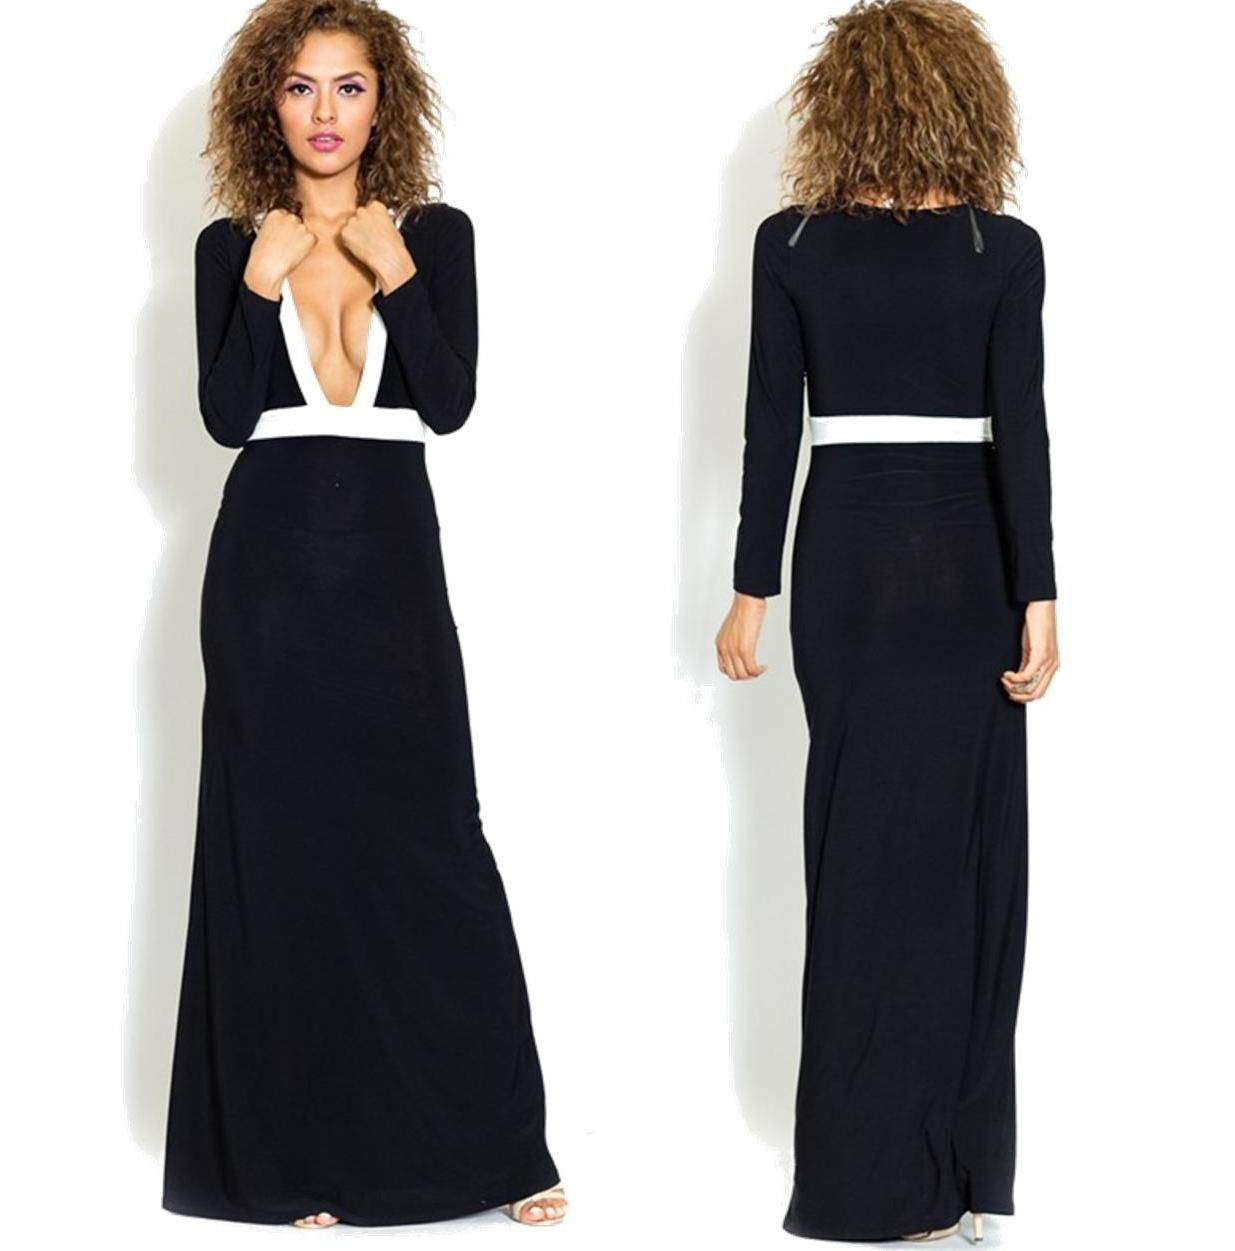 Super deep vneck black and white maxi dress sexy open front black